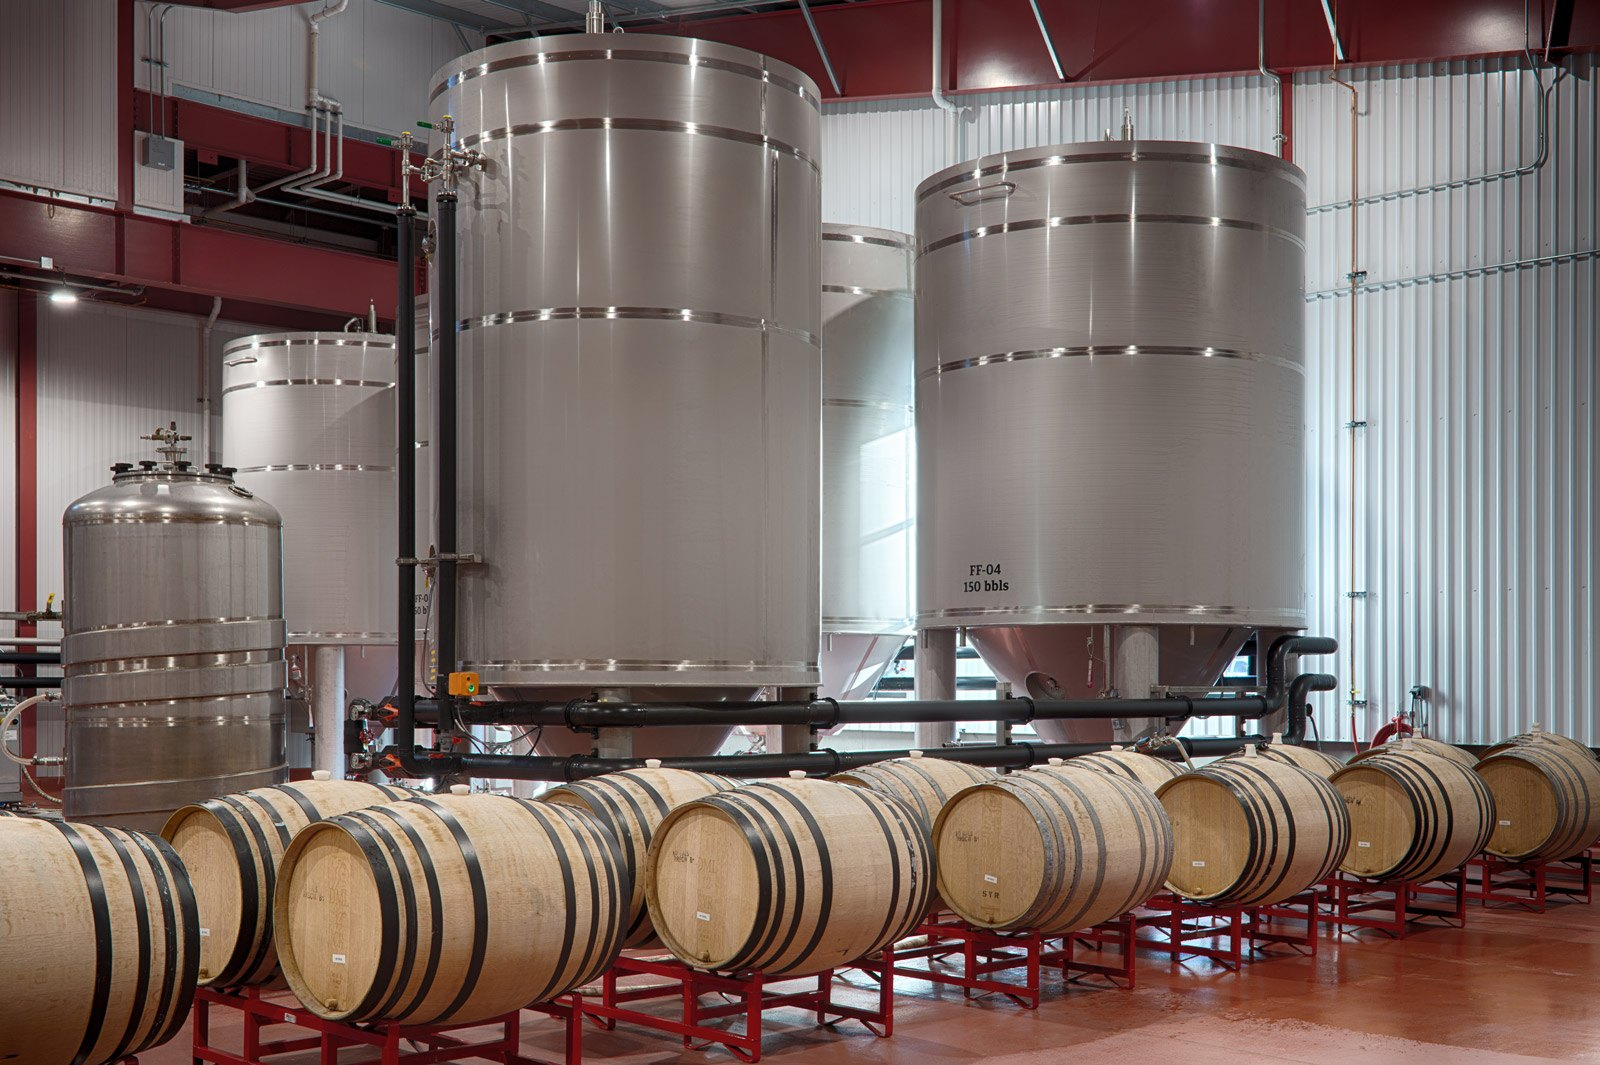 tanks and barrels at funky brewery